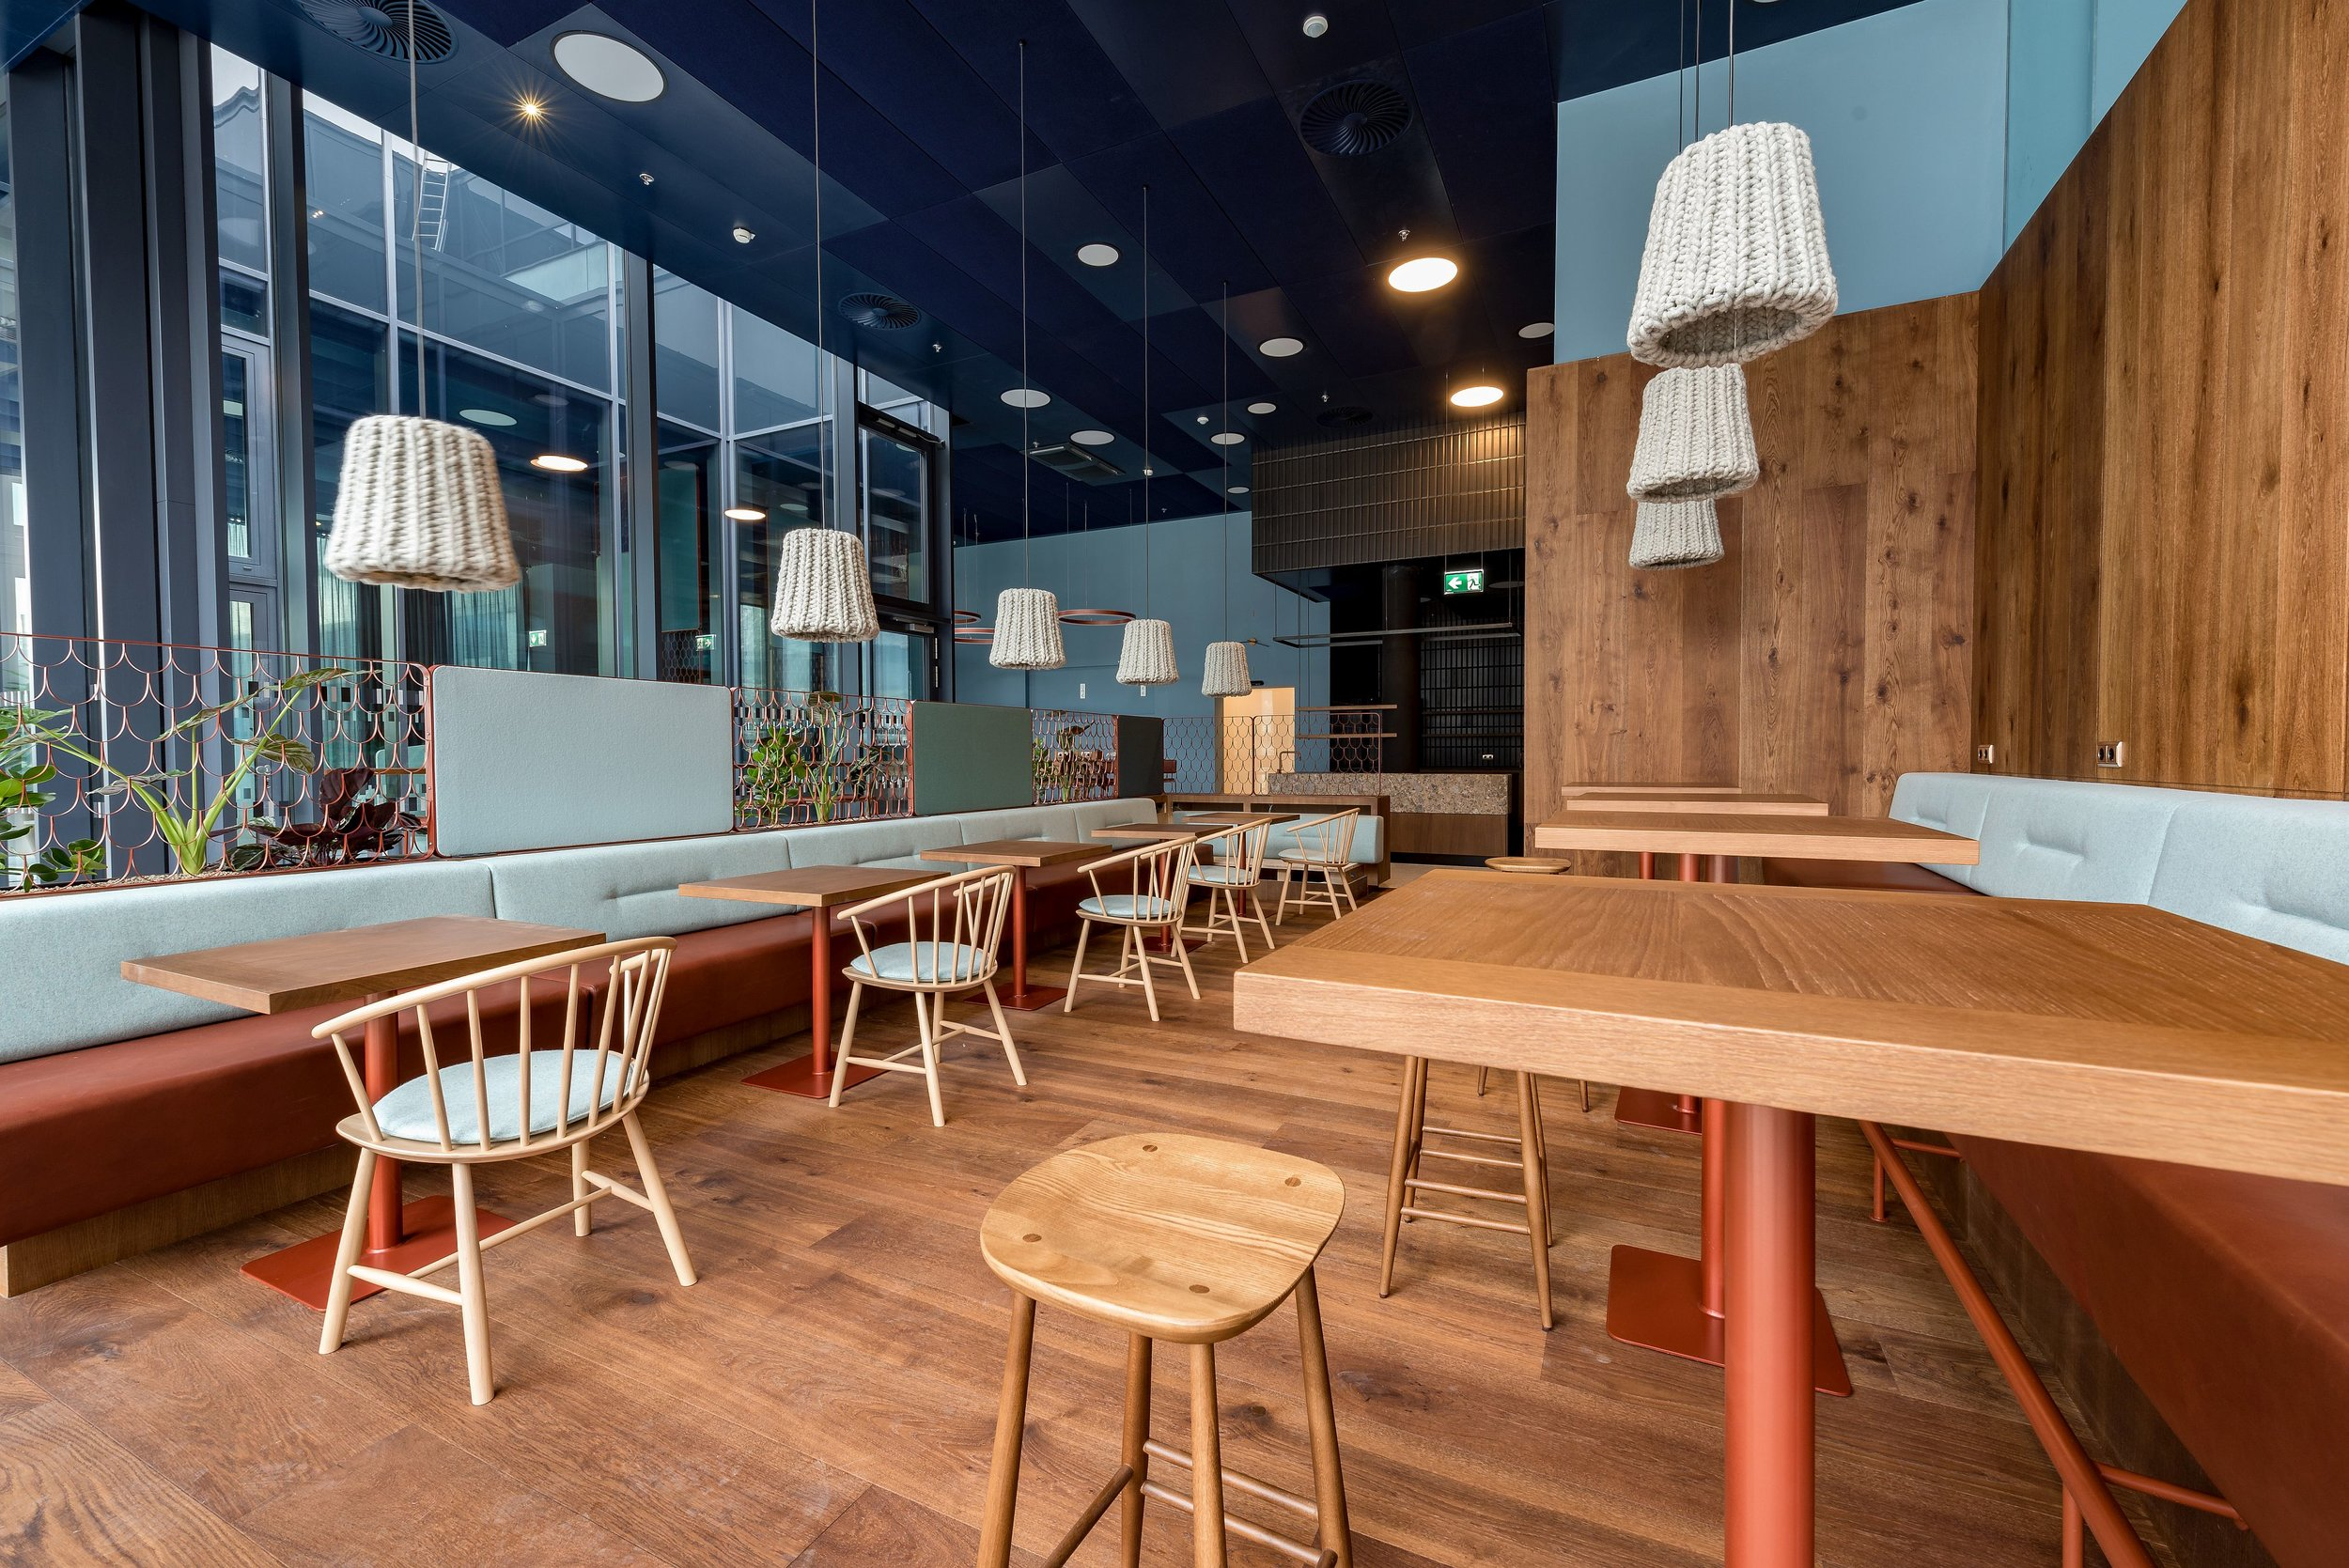 Tyrol Lounge Innsbruck, a Priority Pass lounge